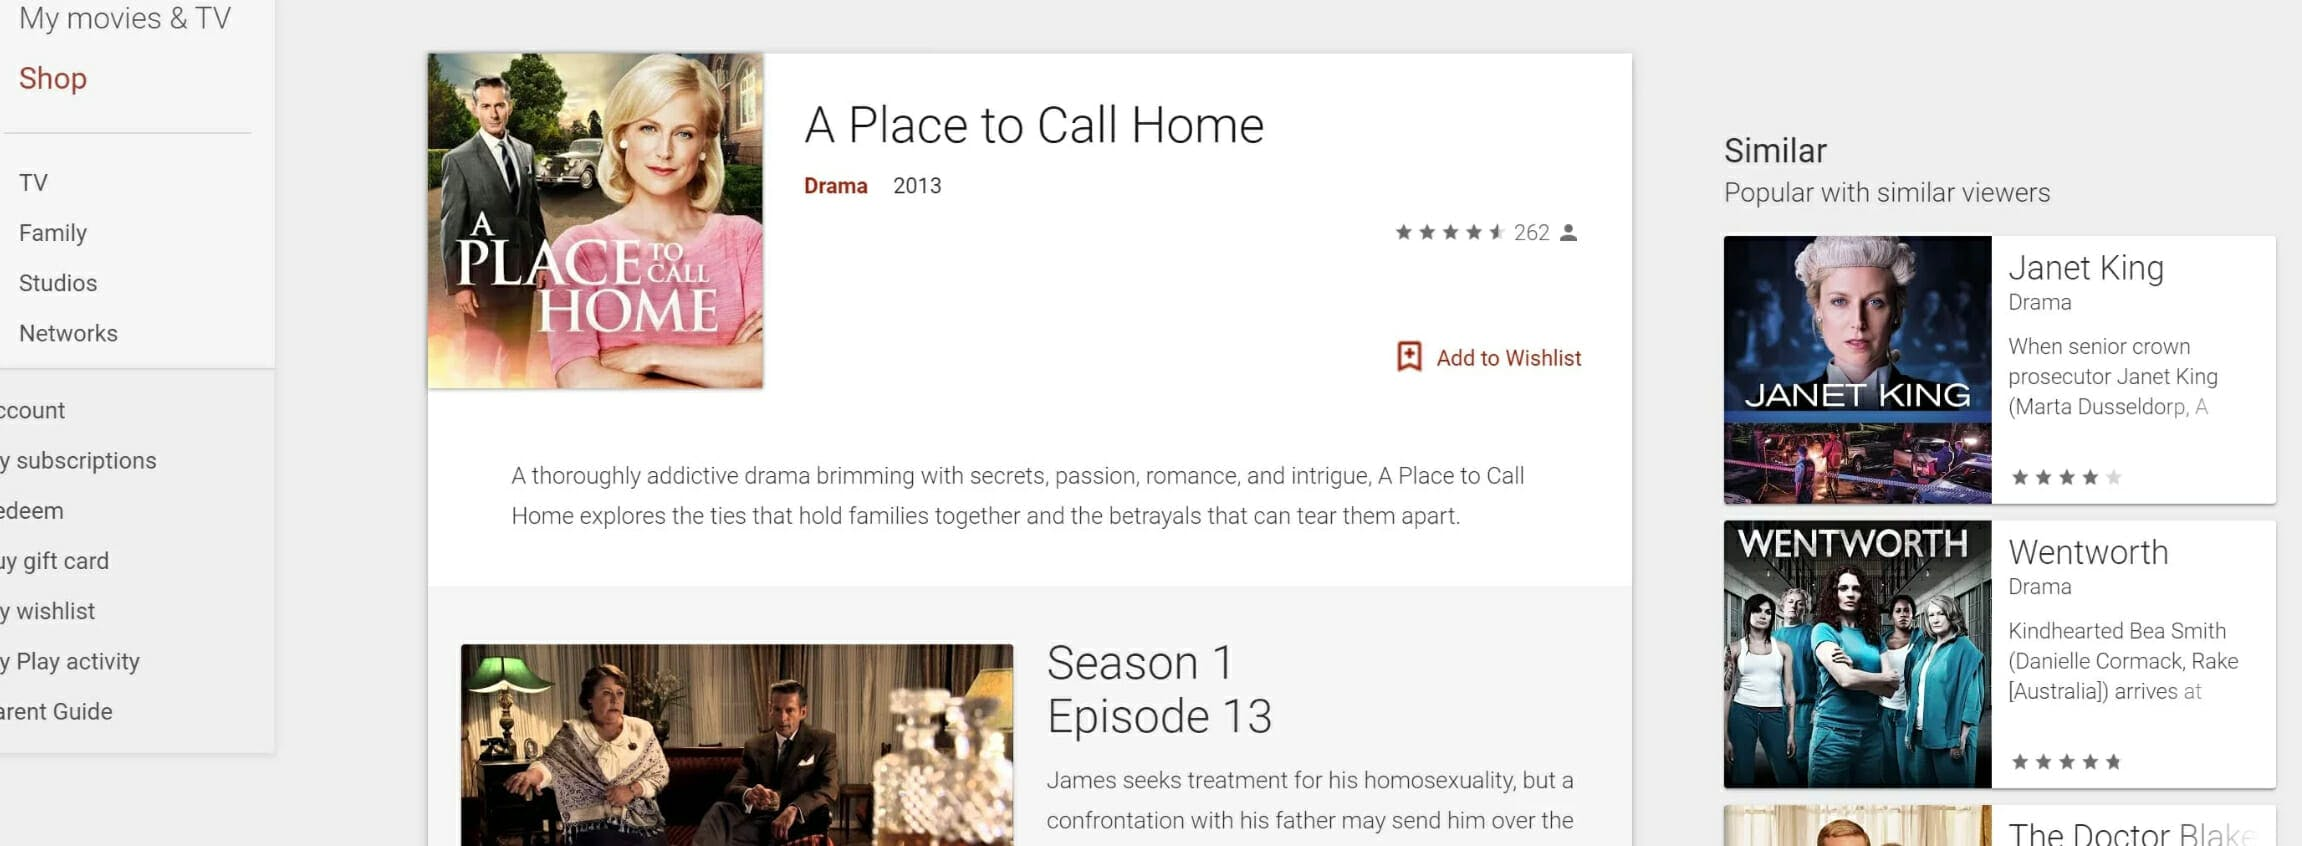 how to watch a place to call home online google play